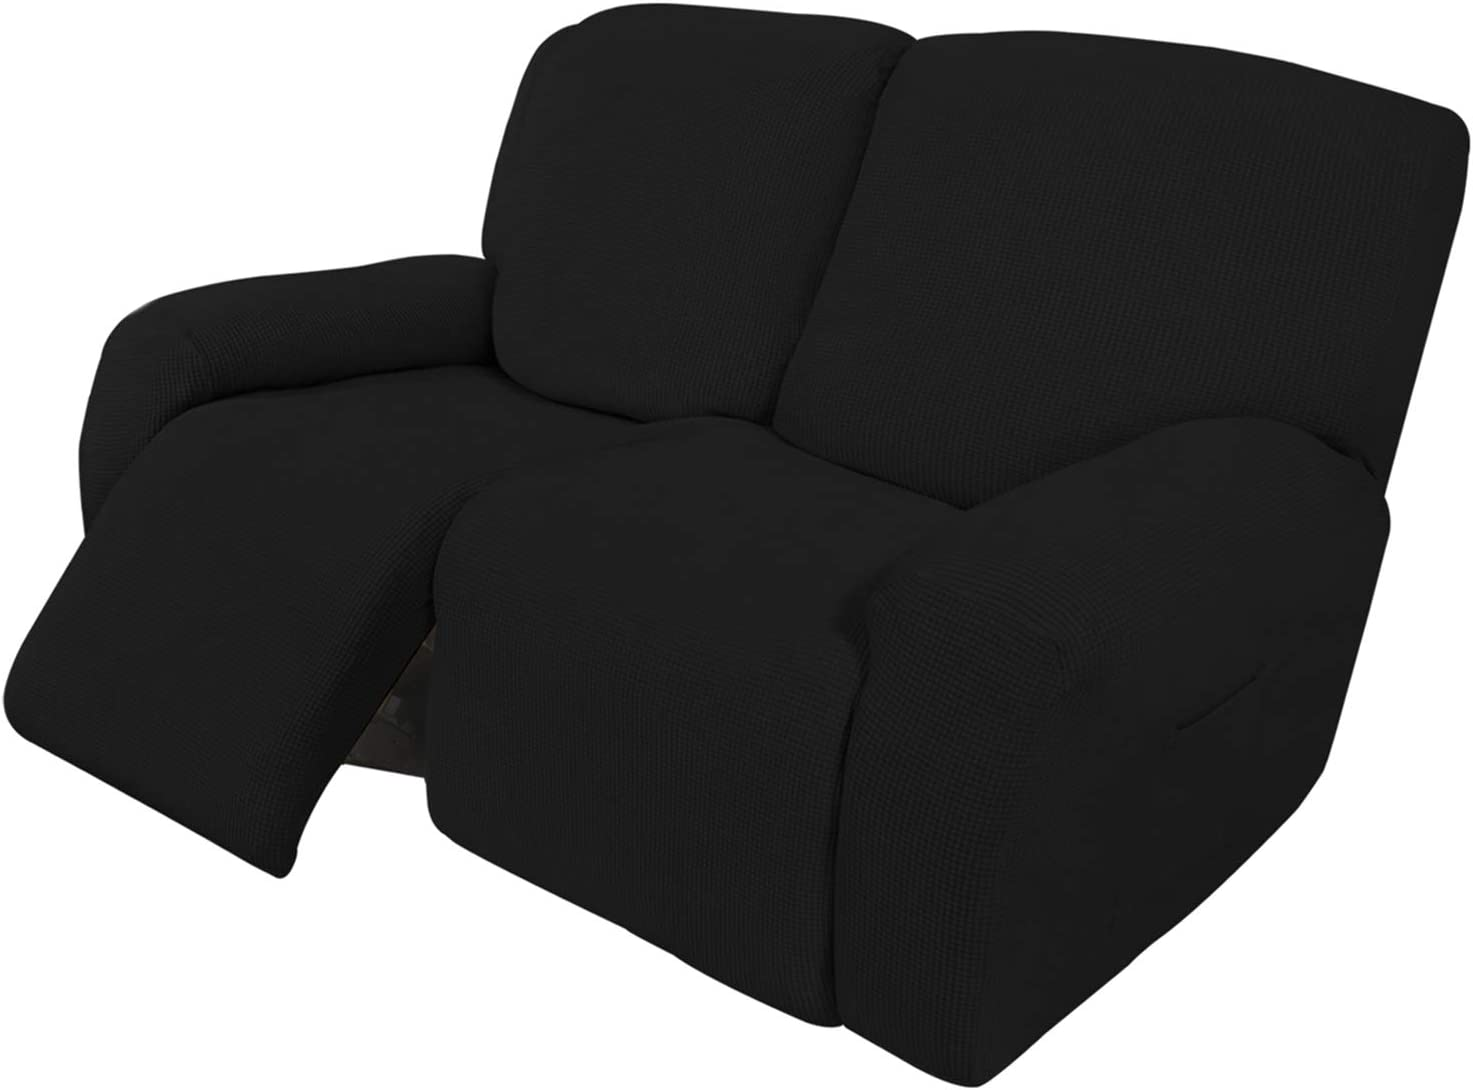 Easy-Going 6 Pieces Recliner Loveseat Stretch Sofa Slipcover Sofa Cover Furniture Protector Couch Soft with Elastic Bottom Kids, Spandex Jacquard Fabric Small Checks Black